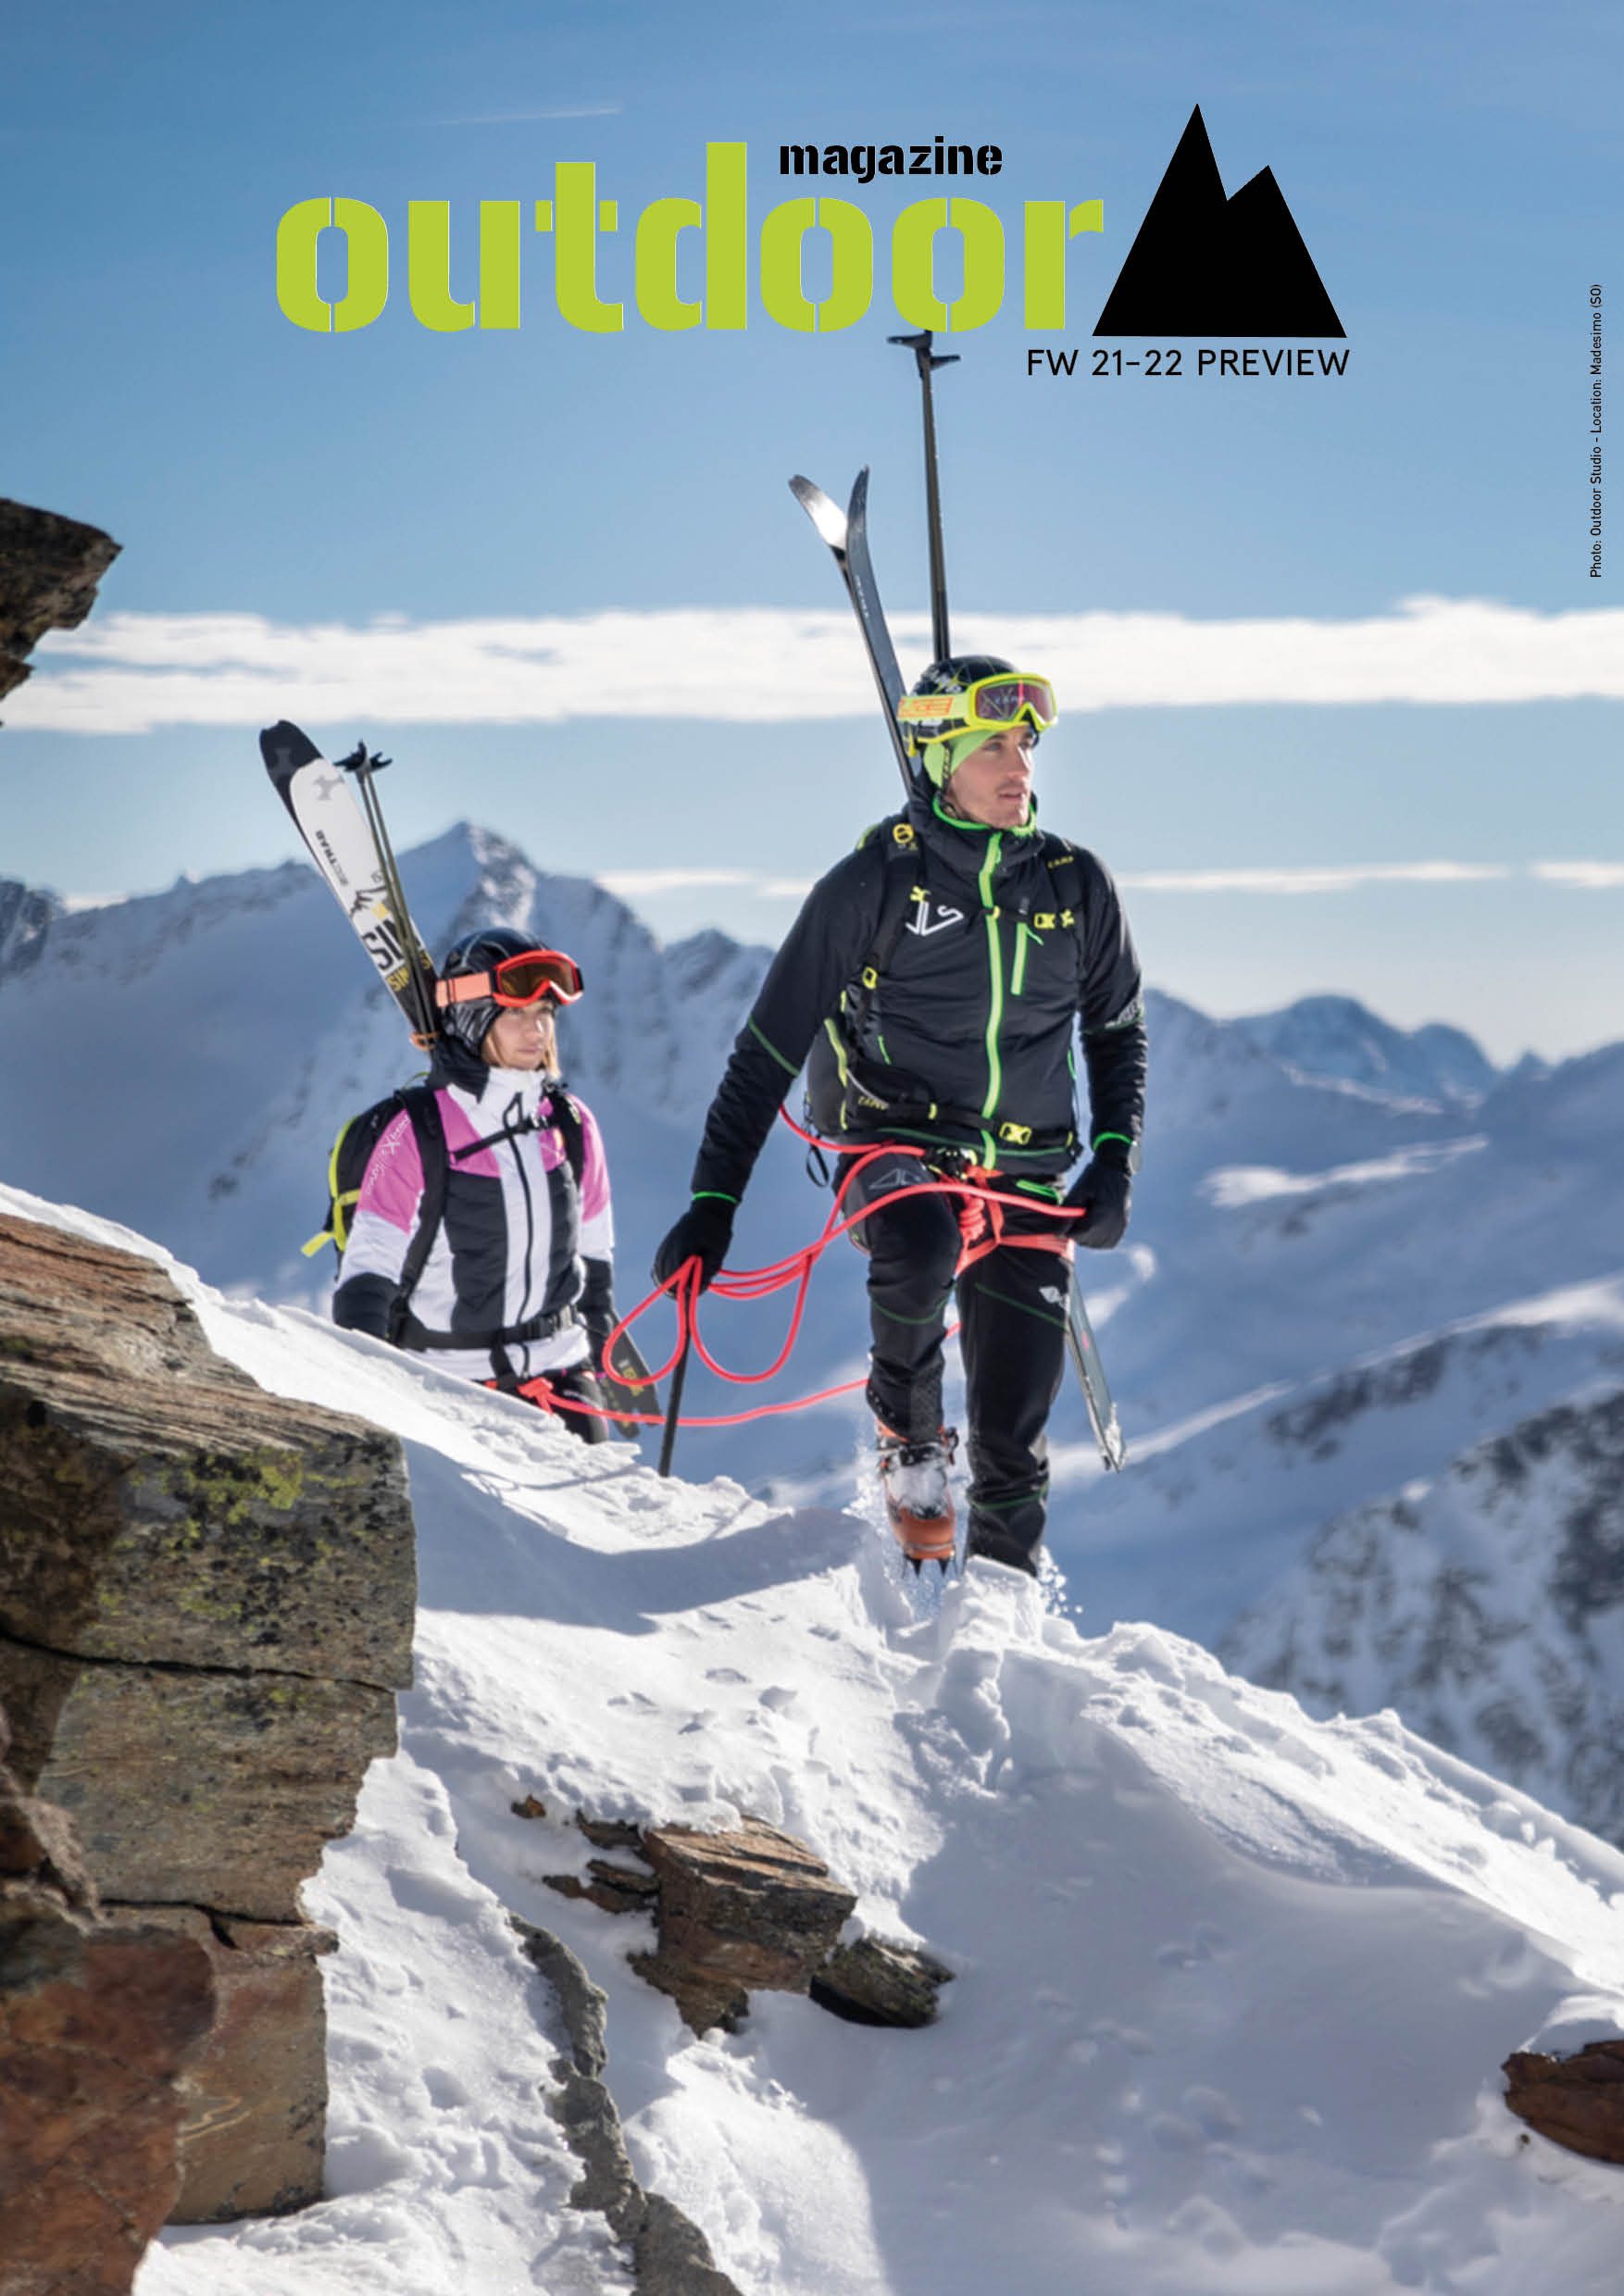 Outdoor Magazine FW 21-22 Preview